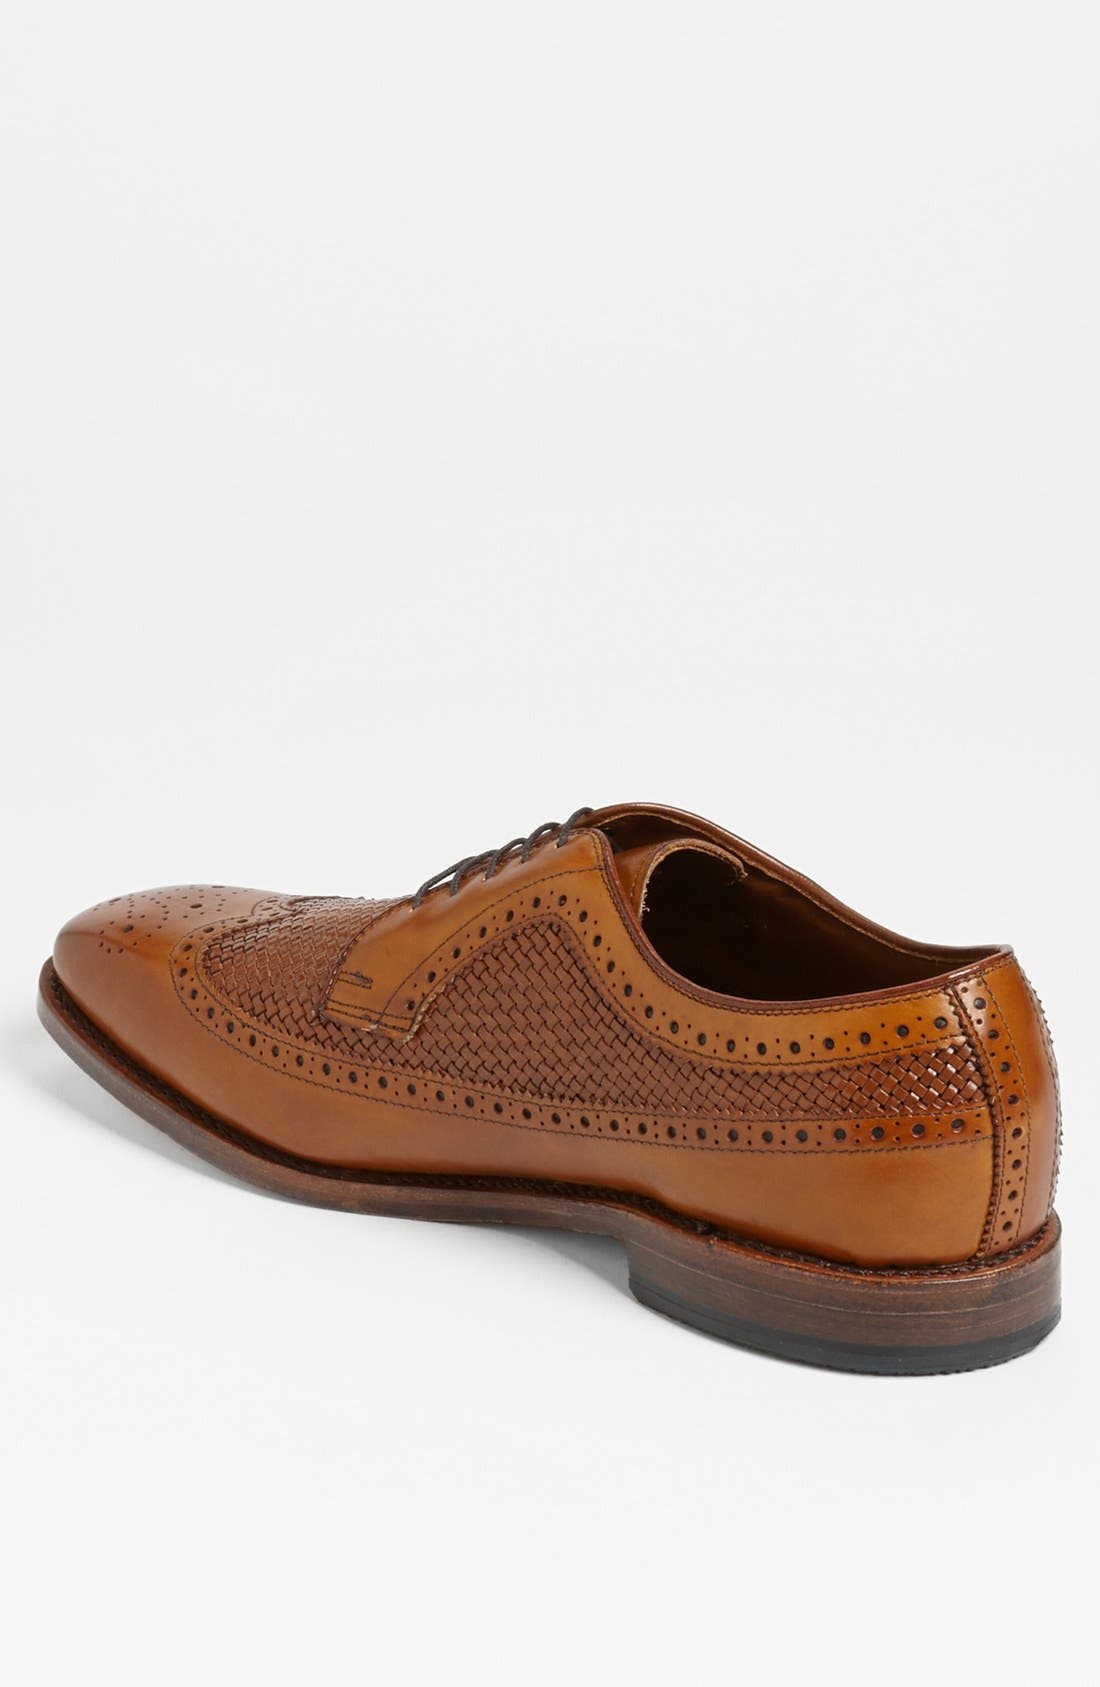 ALLEN EDMONDS,                             'Boca Raton' Longwing,                             Alternate thumbnail 2, color,                             210